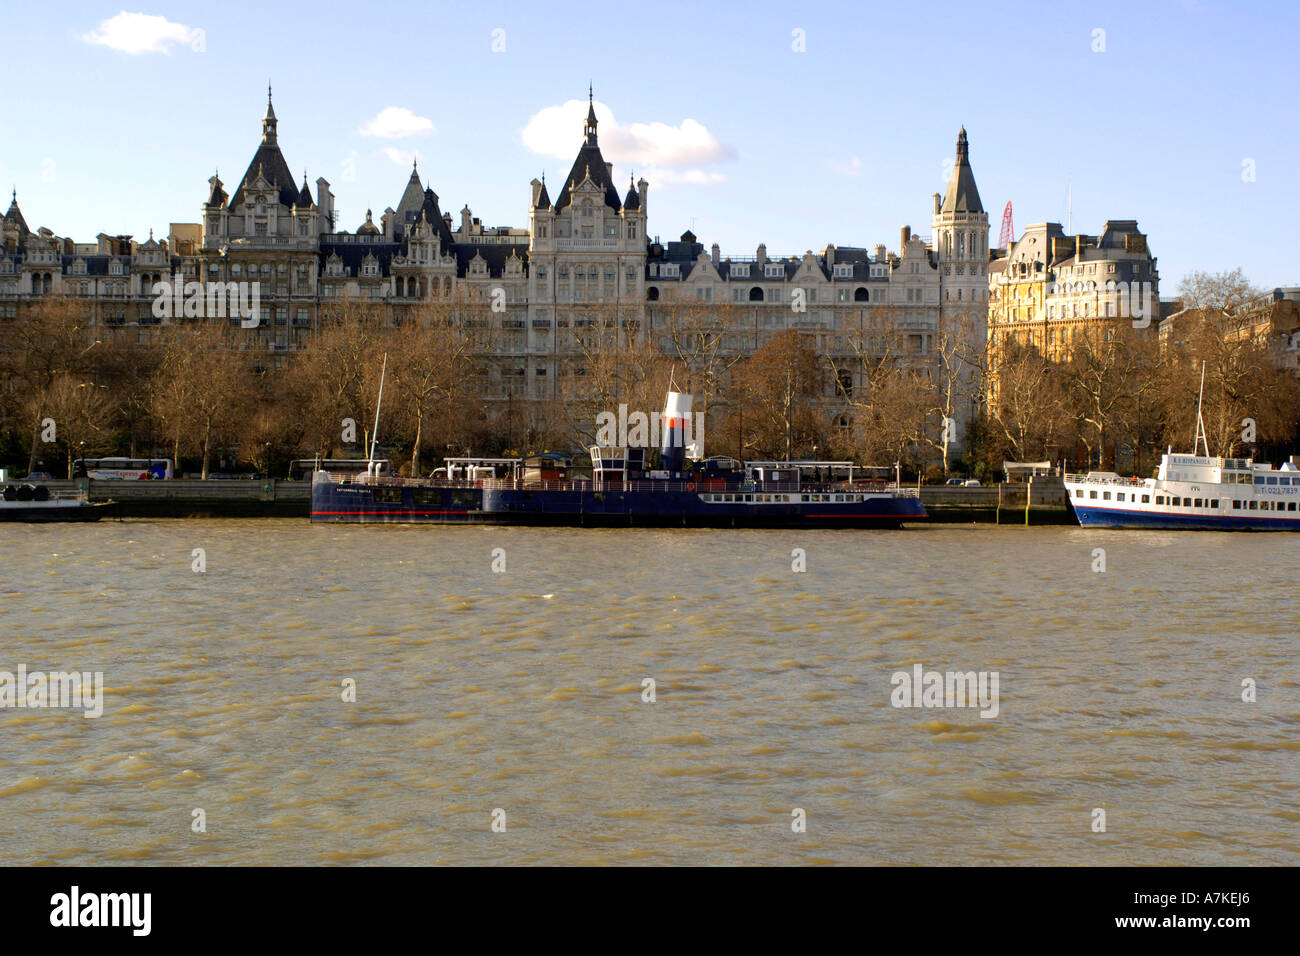 The Victoria Embankment Buildings London Stock Photo 6778277 Alamy